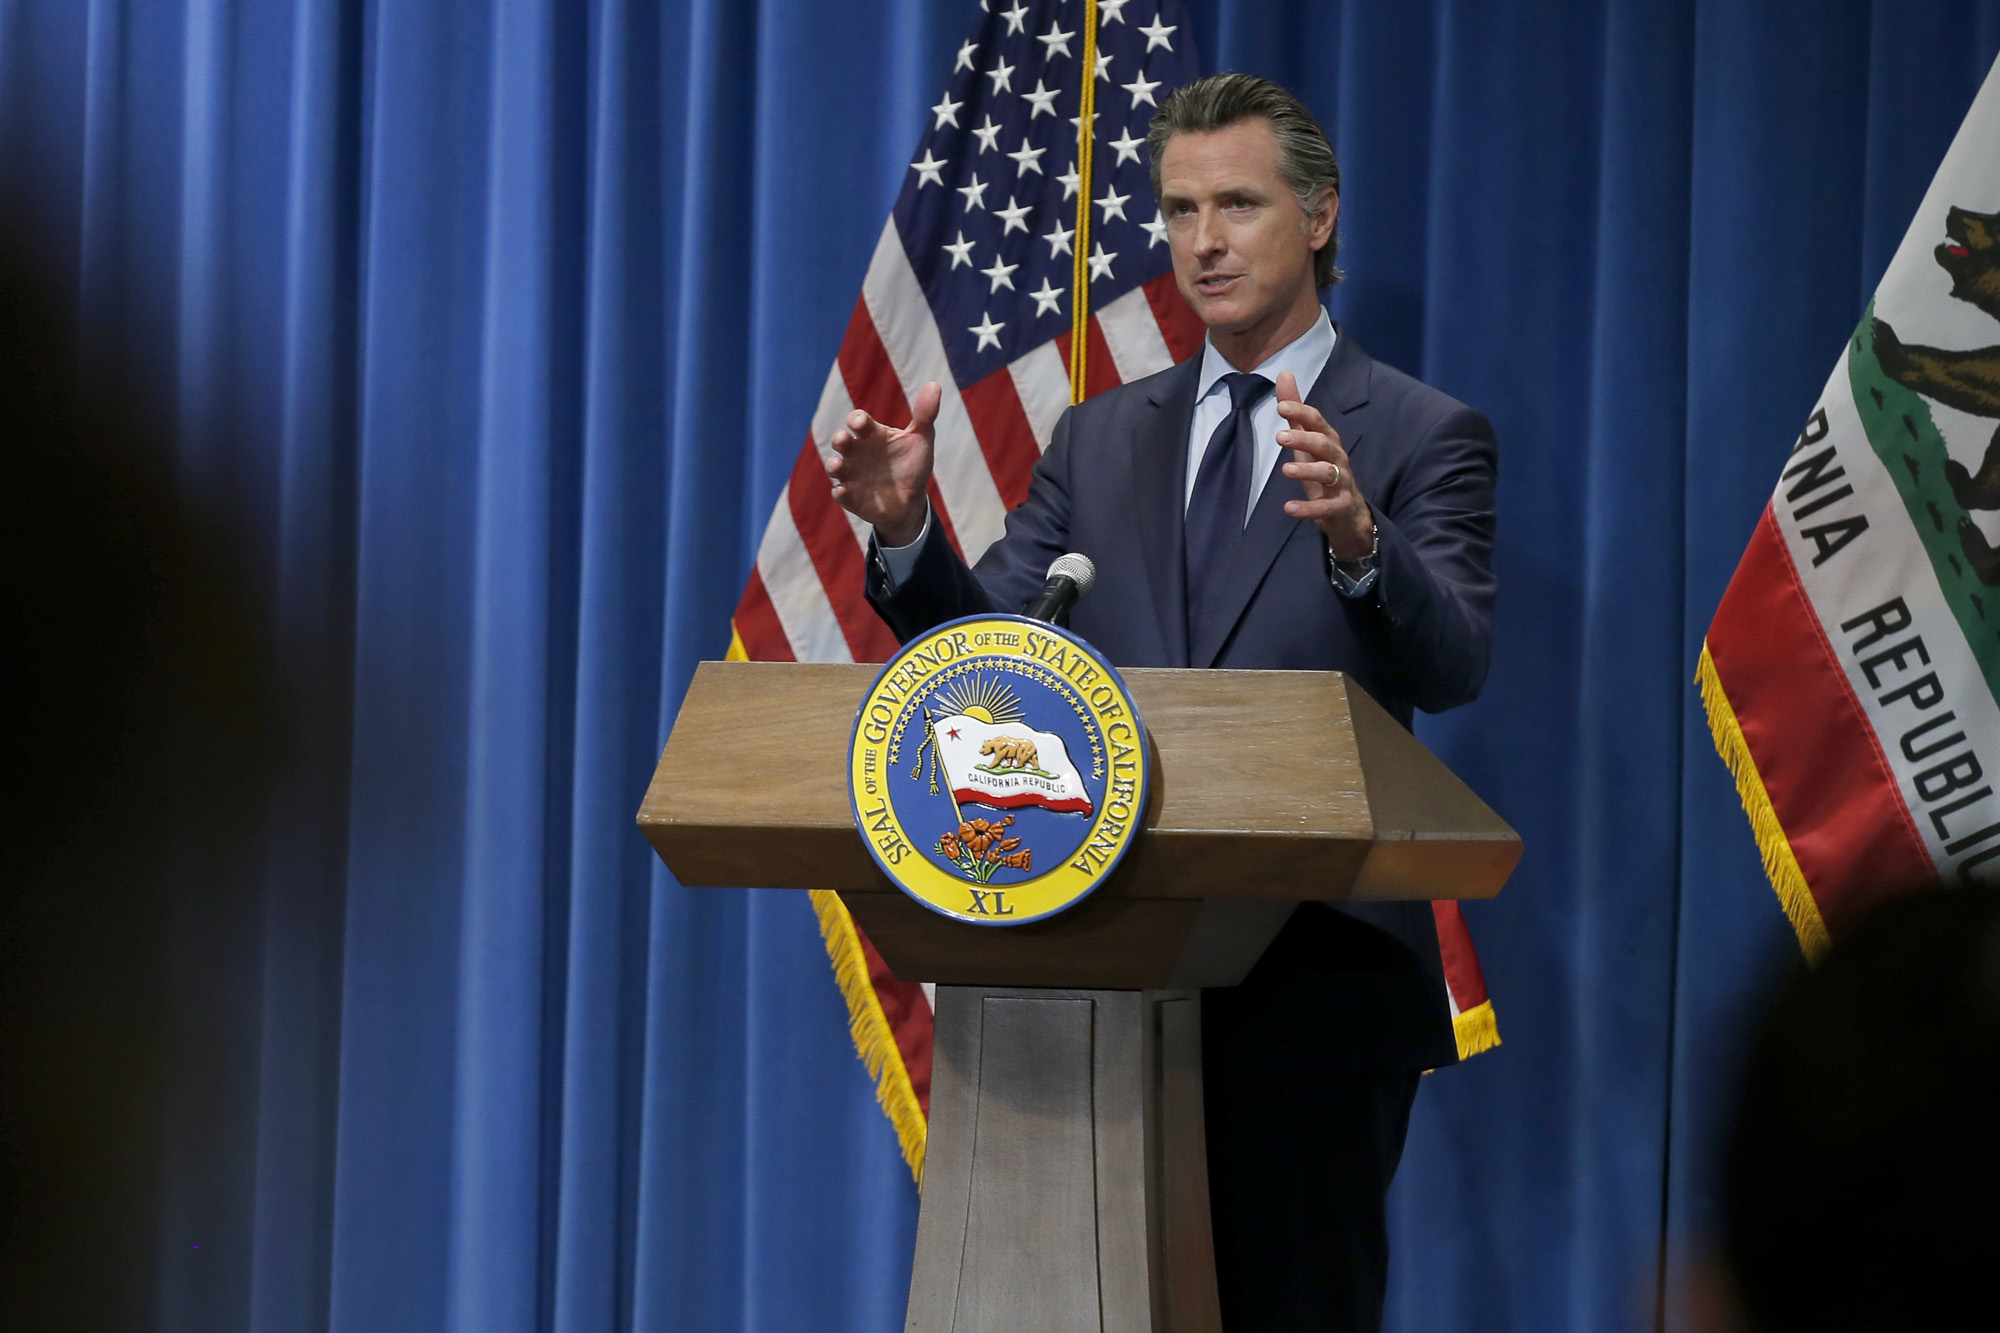 Gov. Gavin Newsom discusses his revised 2020-2021 state budget during a news conference in Sacramento on May 14, 2020. Photo by AP Rich Pedroncelli, AP Photo/Pool